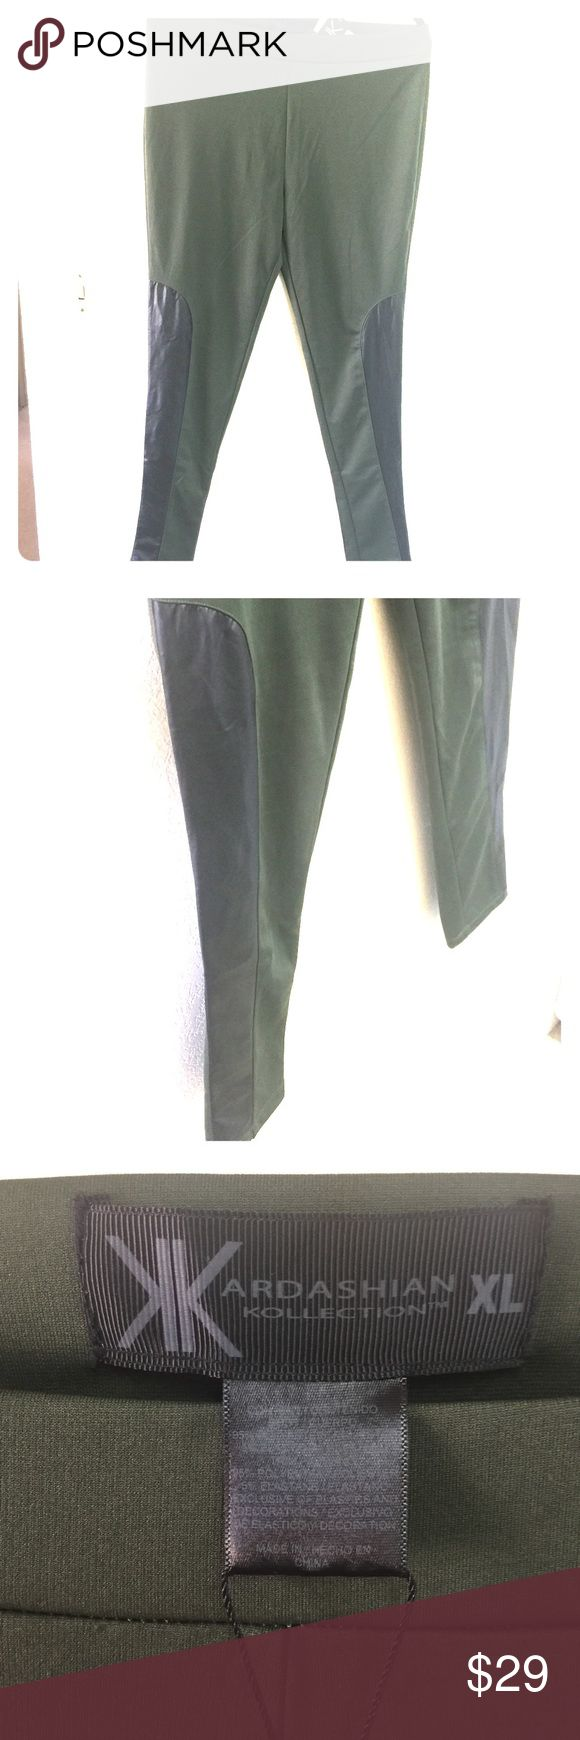 Kardashian Kollection Leggings XL Kardashian Kollection leggings. Army green color. XL Kardashian Kollection Pants Leggings